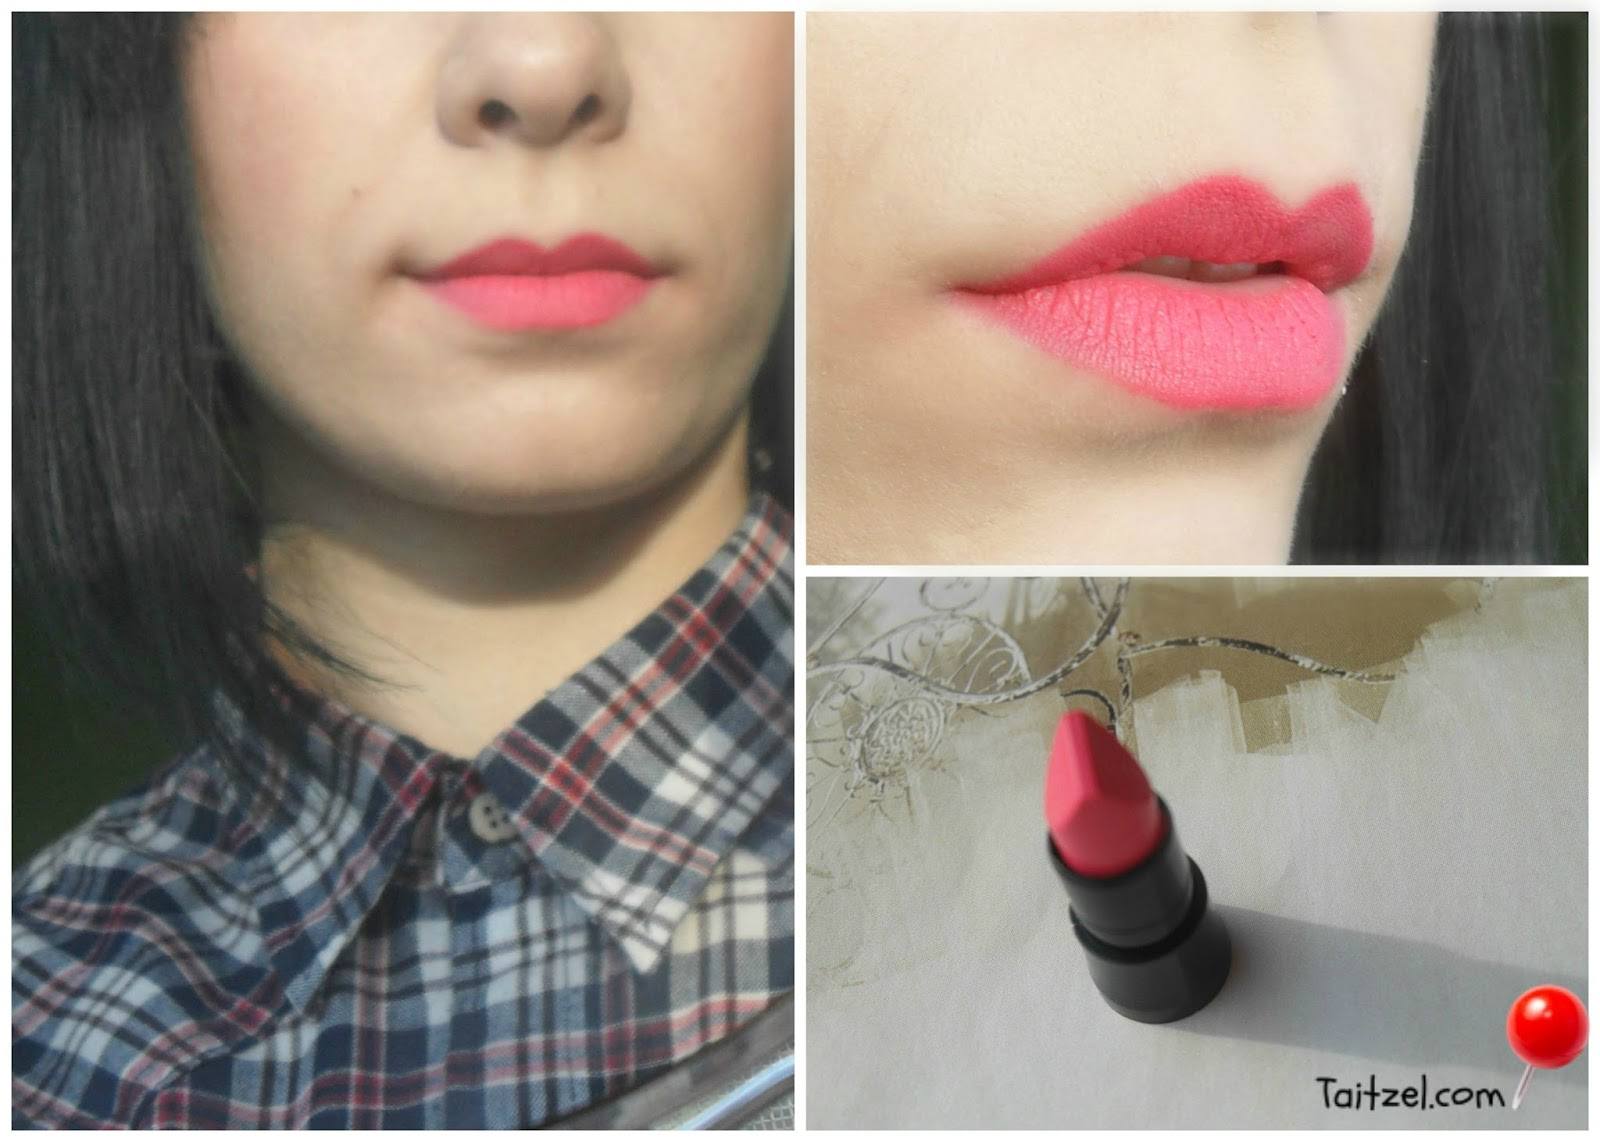 Swatch Avon True Color Perfectly Matte Part 2 Taitzel Beauty